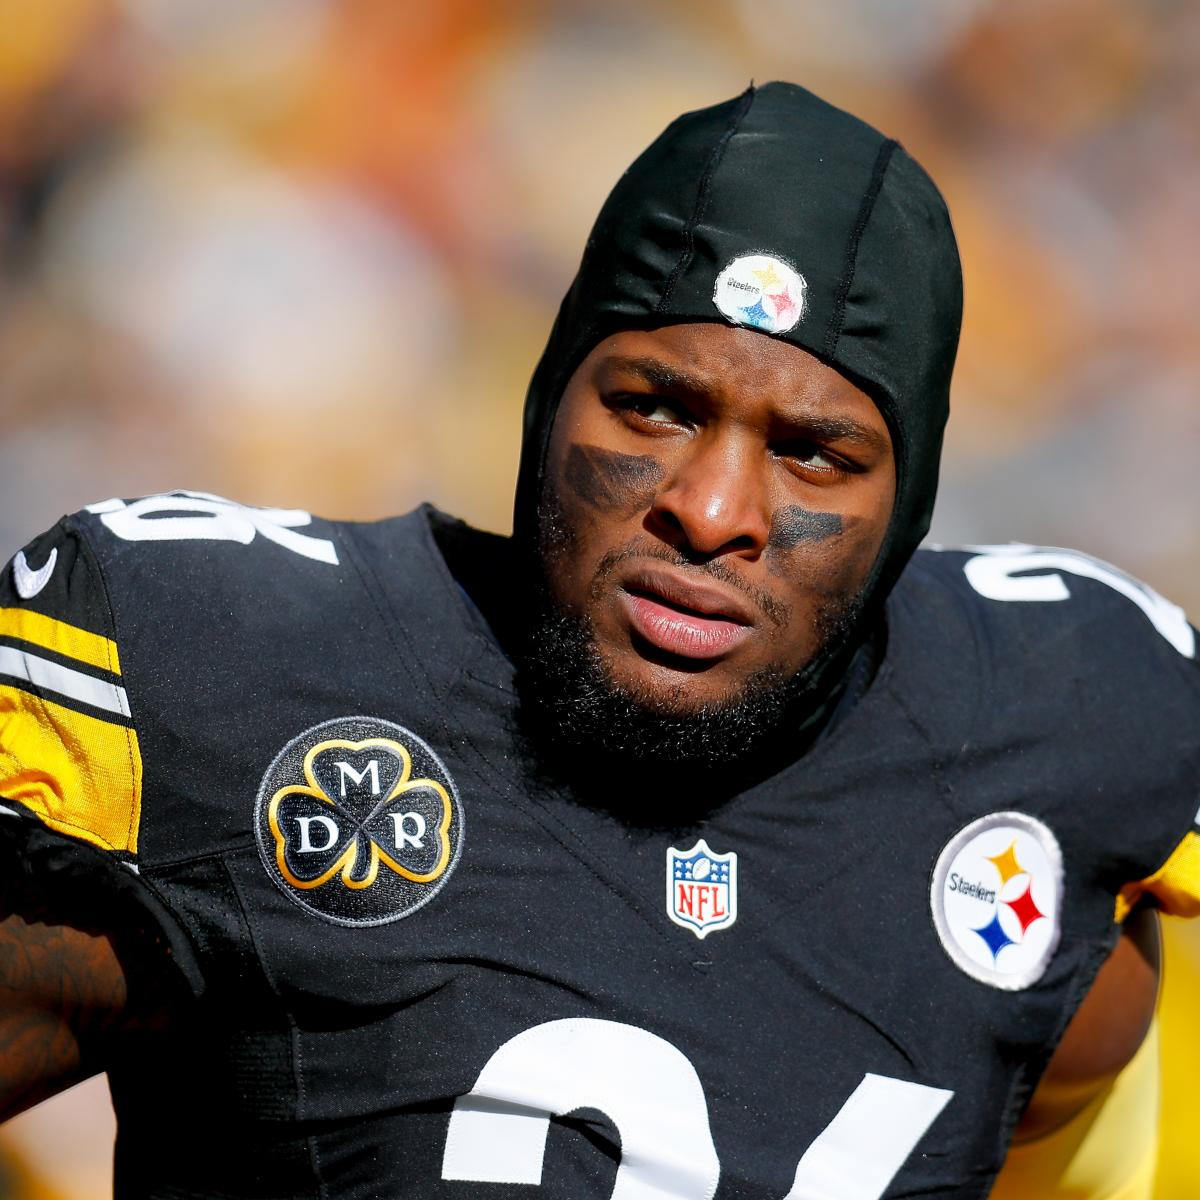 Pittsburgh Steelers Mike Tomlin S New Contract Ushers In: Le'Veon Bell Reportedly Skipped Most Of Final Walkthrough